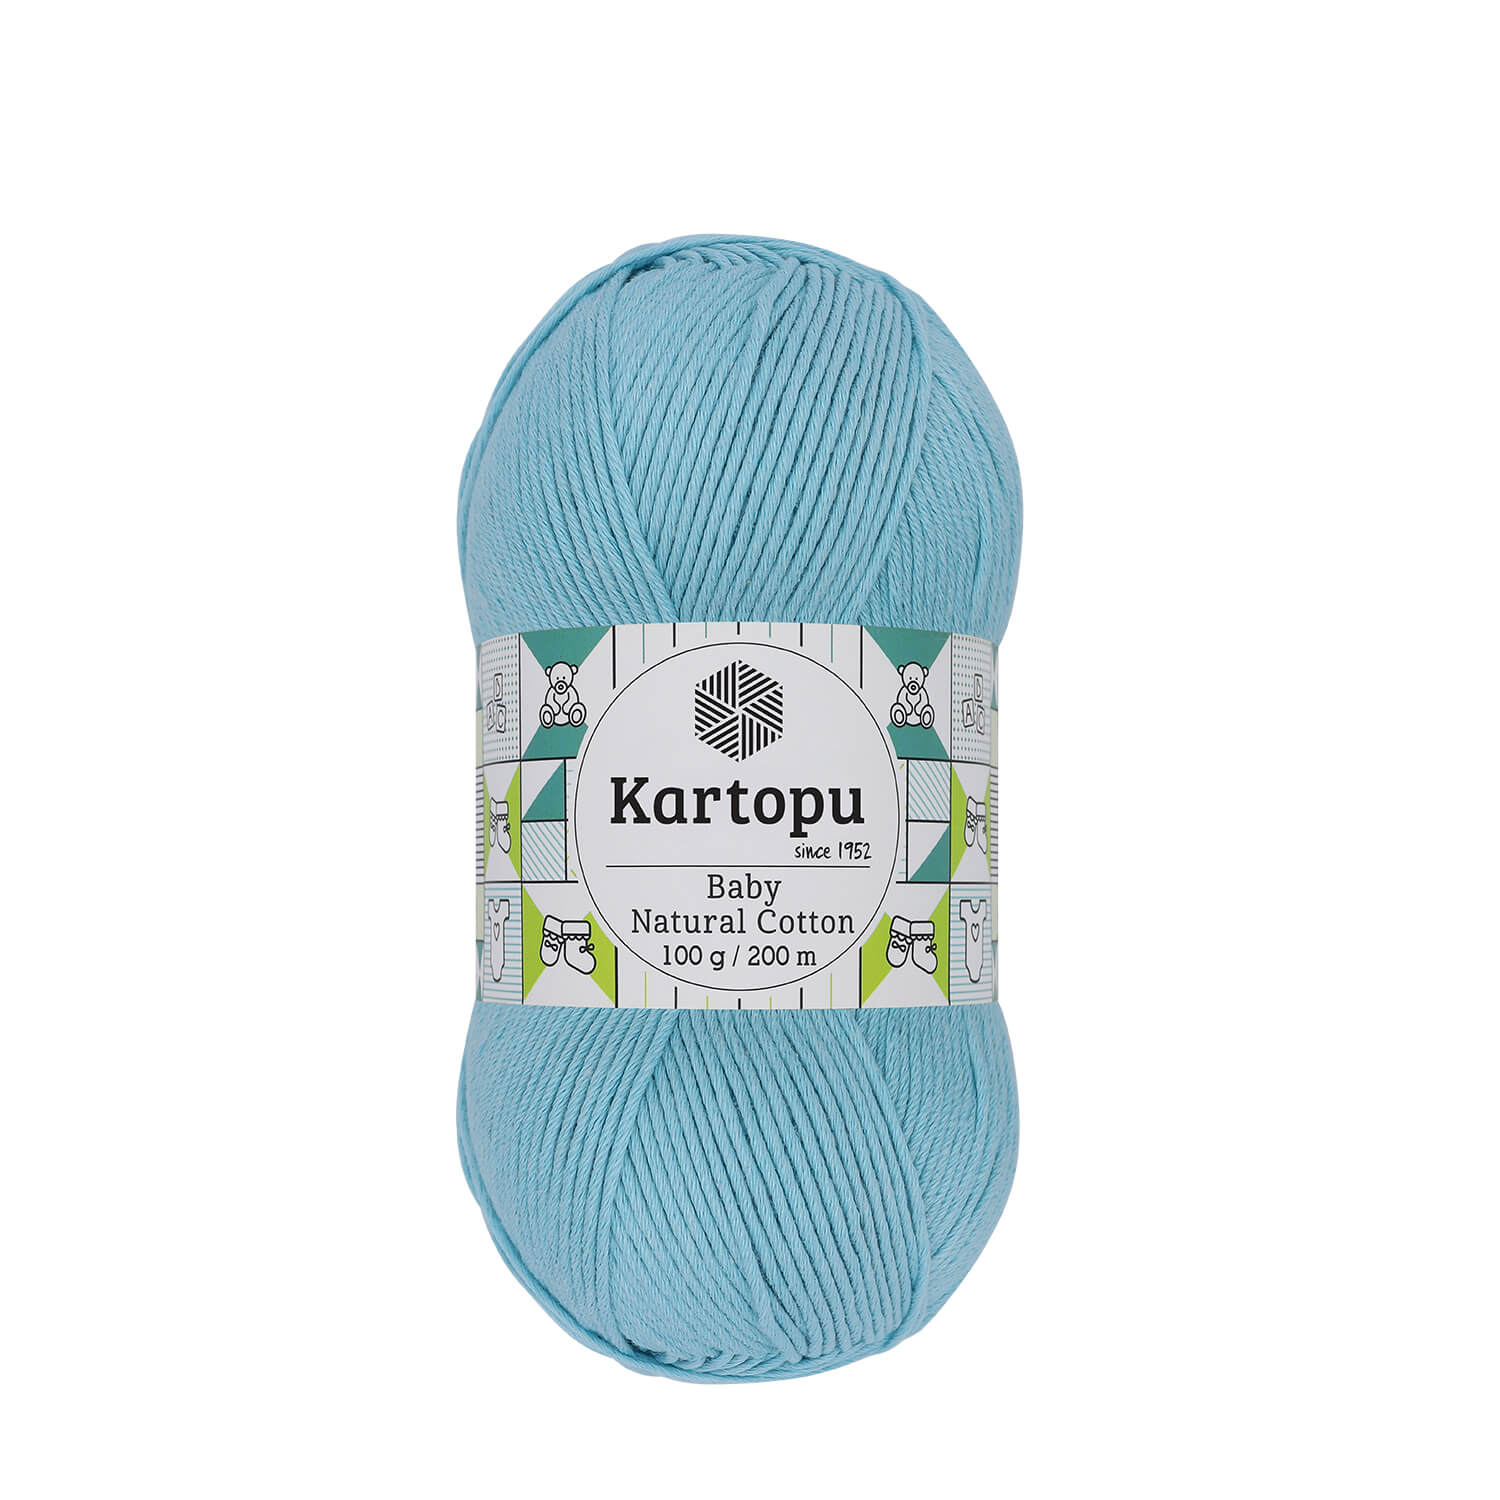 Baby Natural Cotton K551